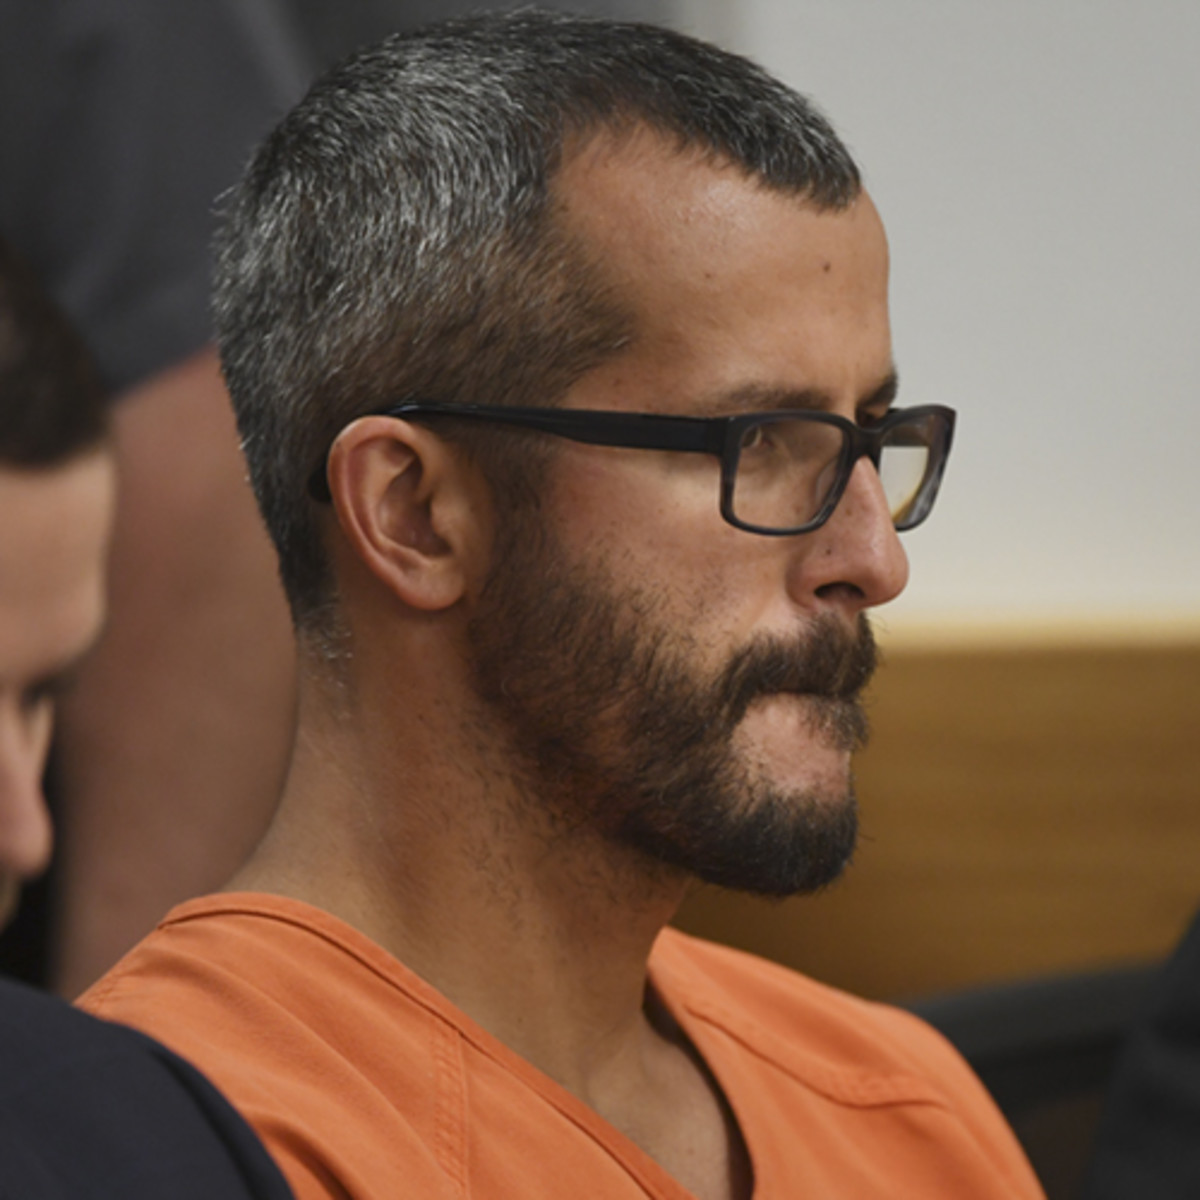 Chris Watts - Confession, Murder & Family - Biography